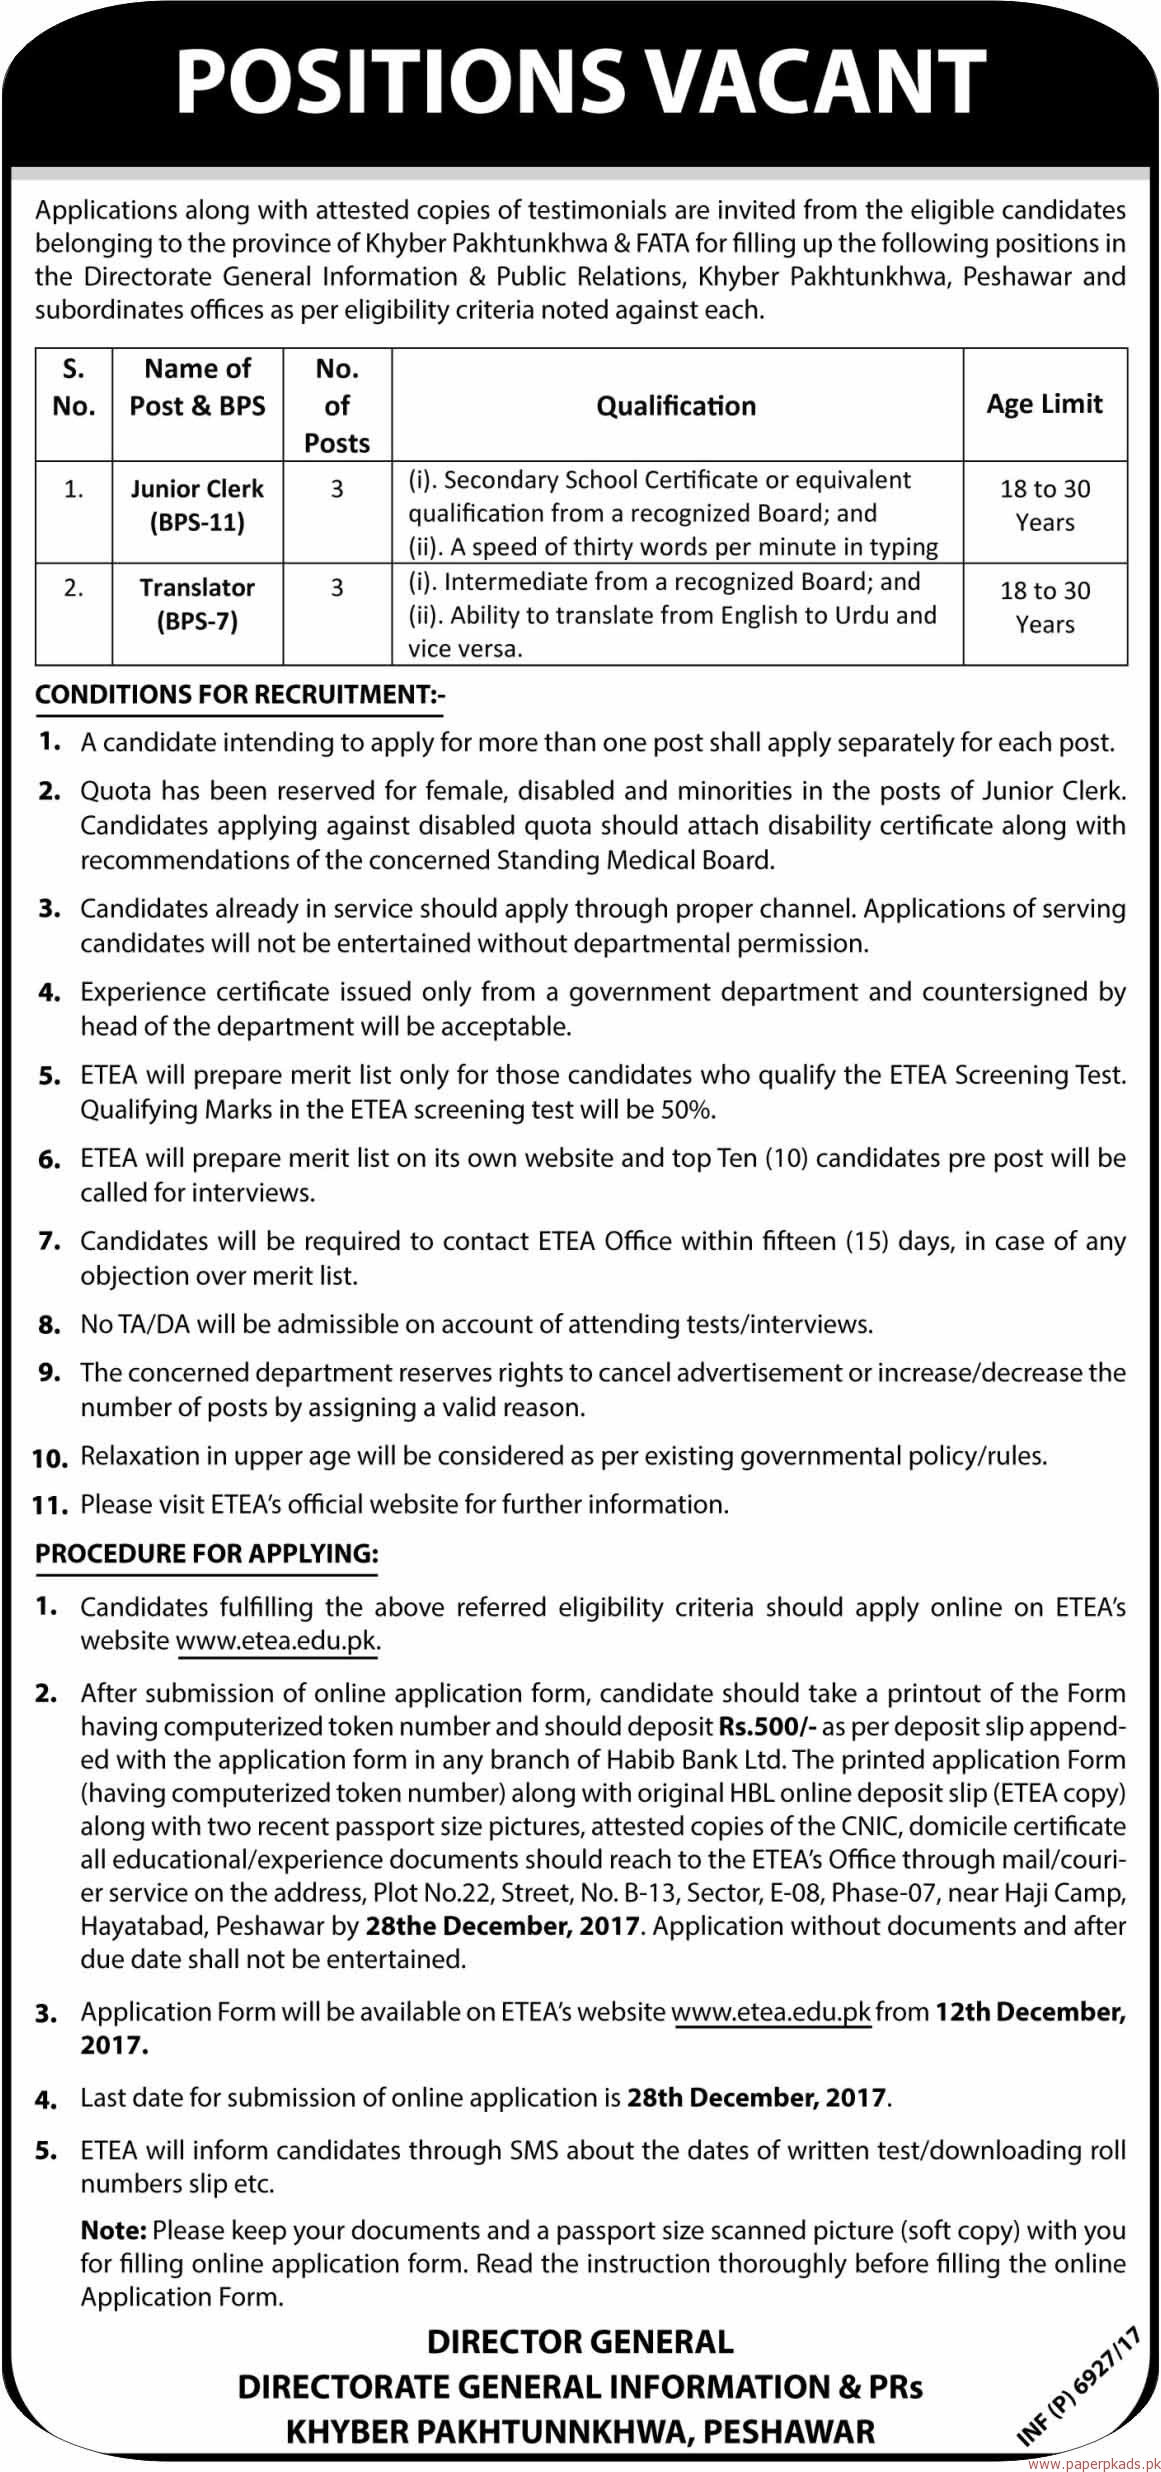 Directorate General Information & PRs Khyber Pakhtunkhwa Jobs 2017